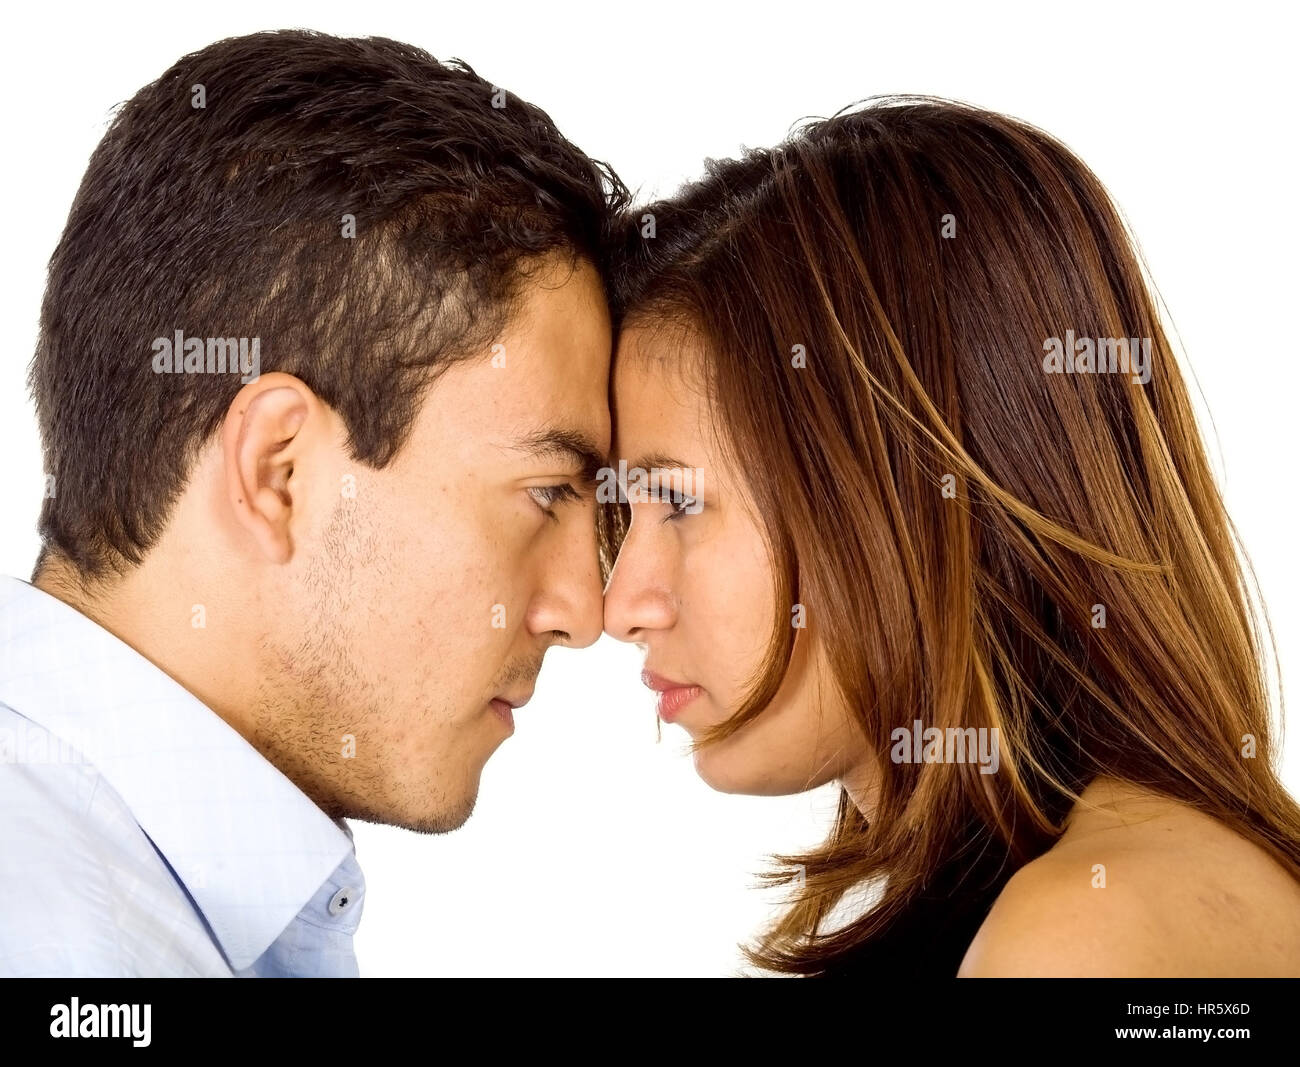 couple going head to head in an argument isolated over a white background - Stock Image